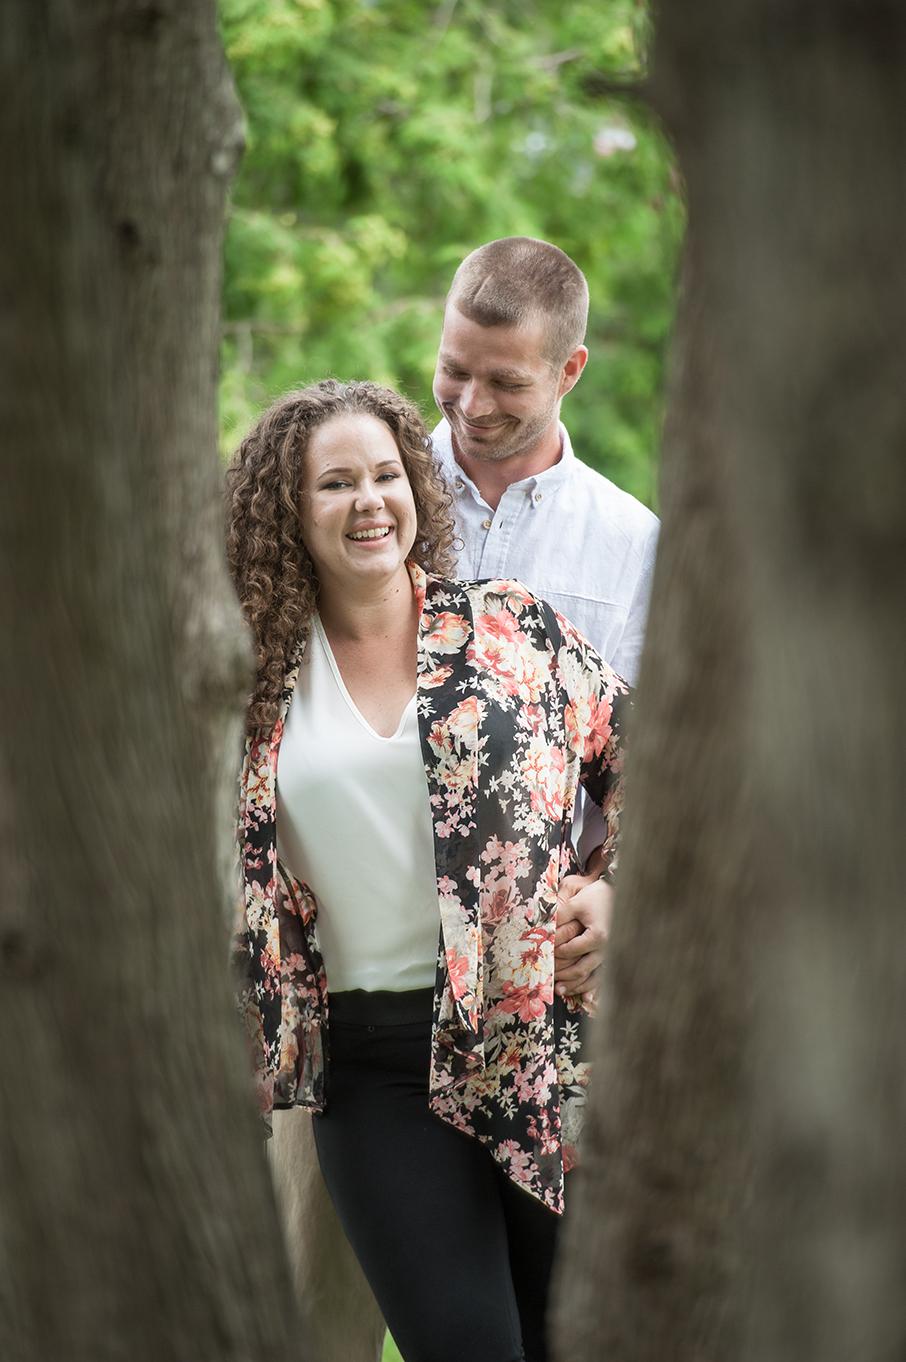 Holly&Rob_EngagementSession-35.jpg